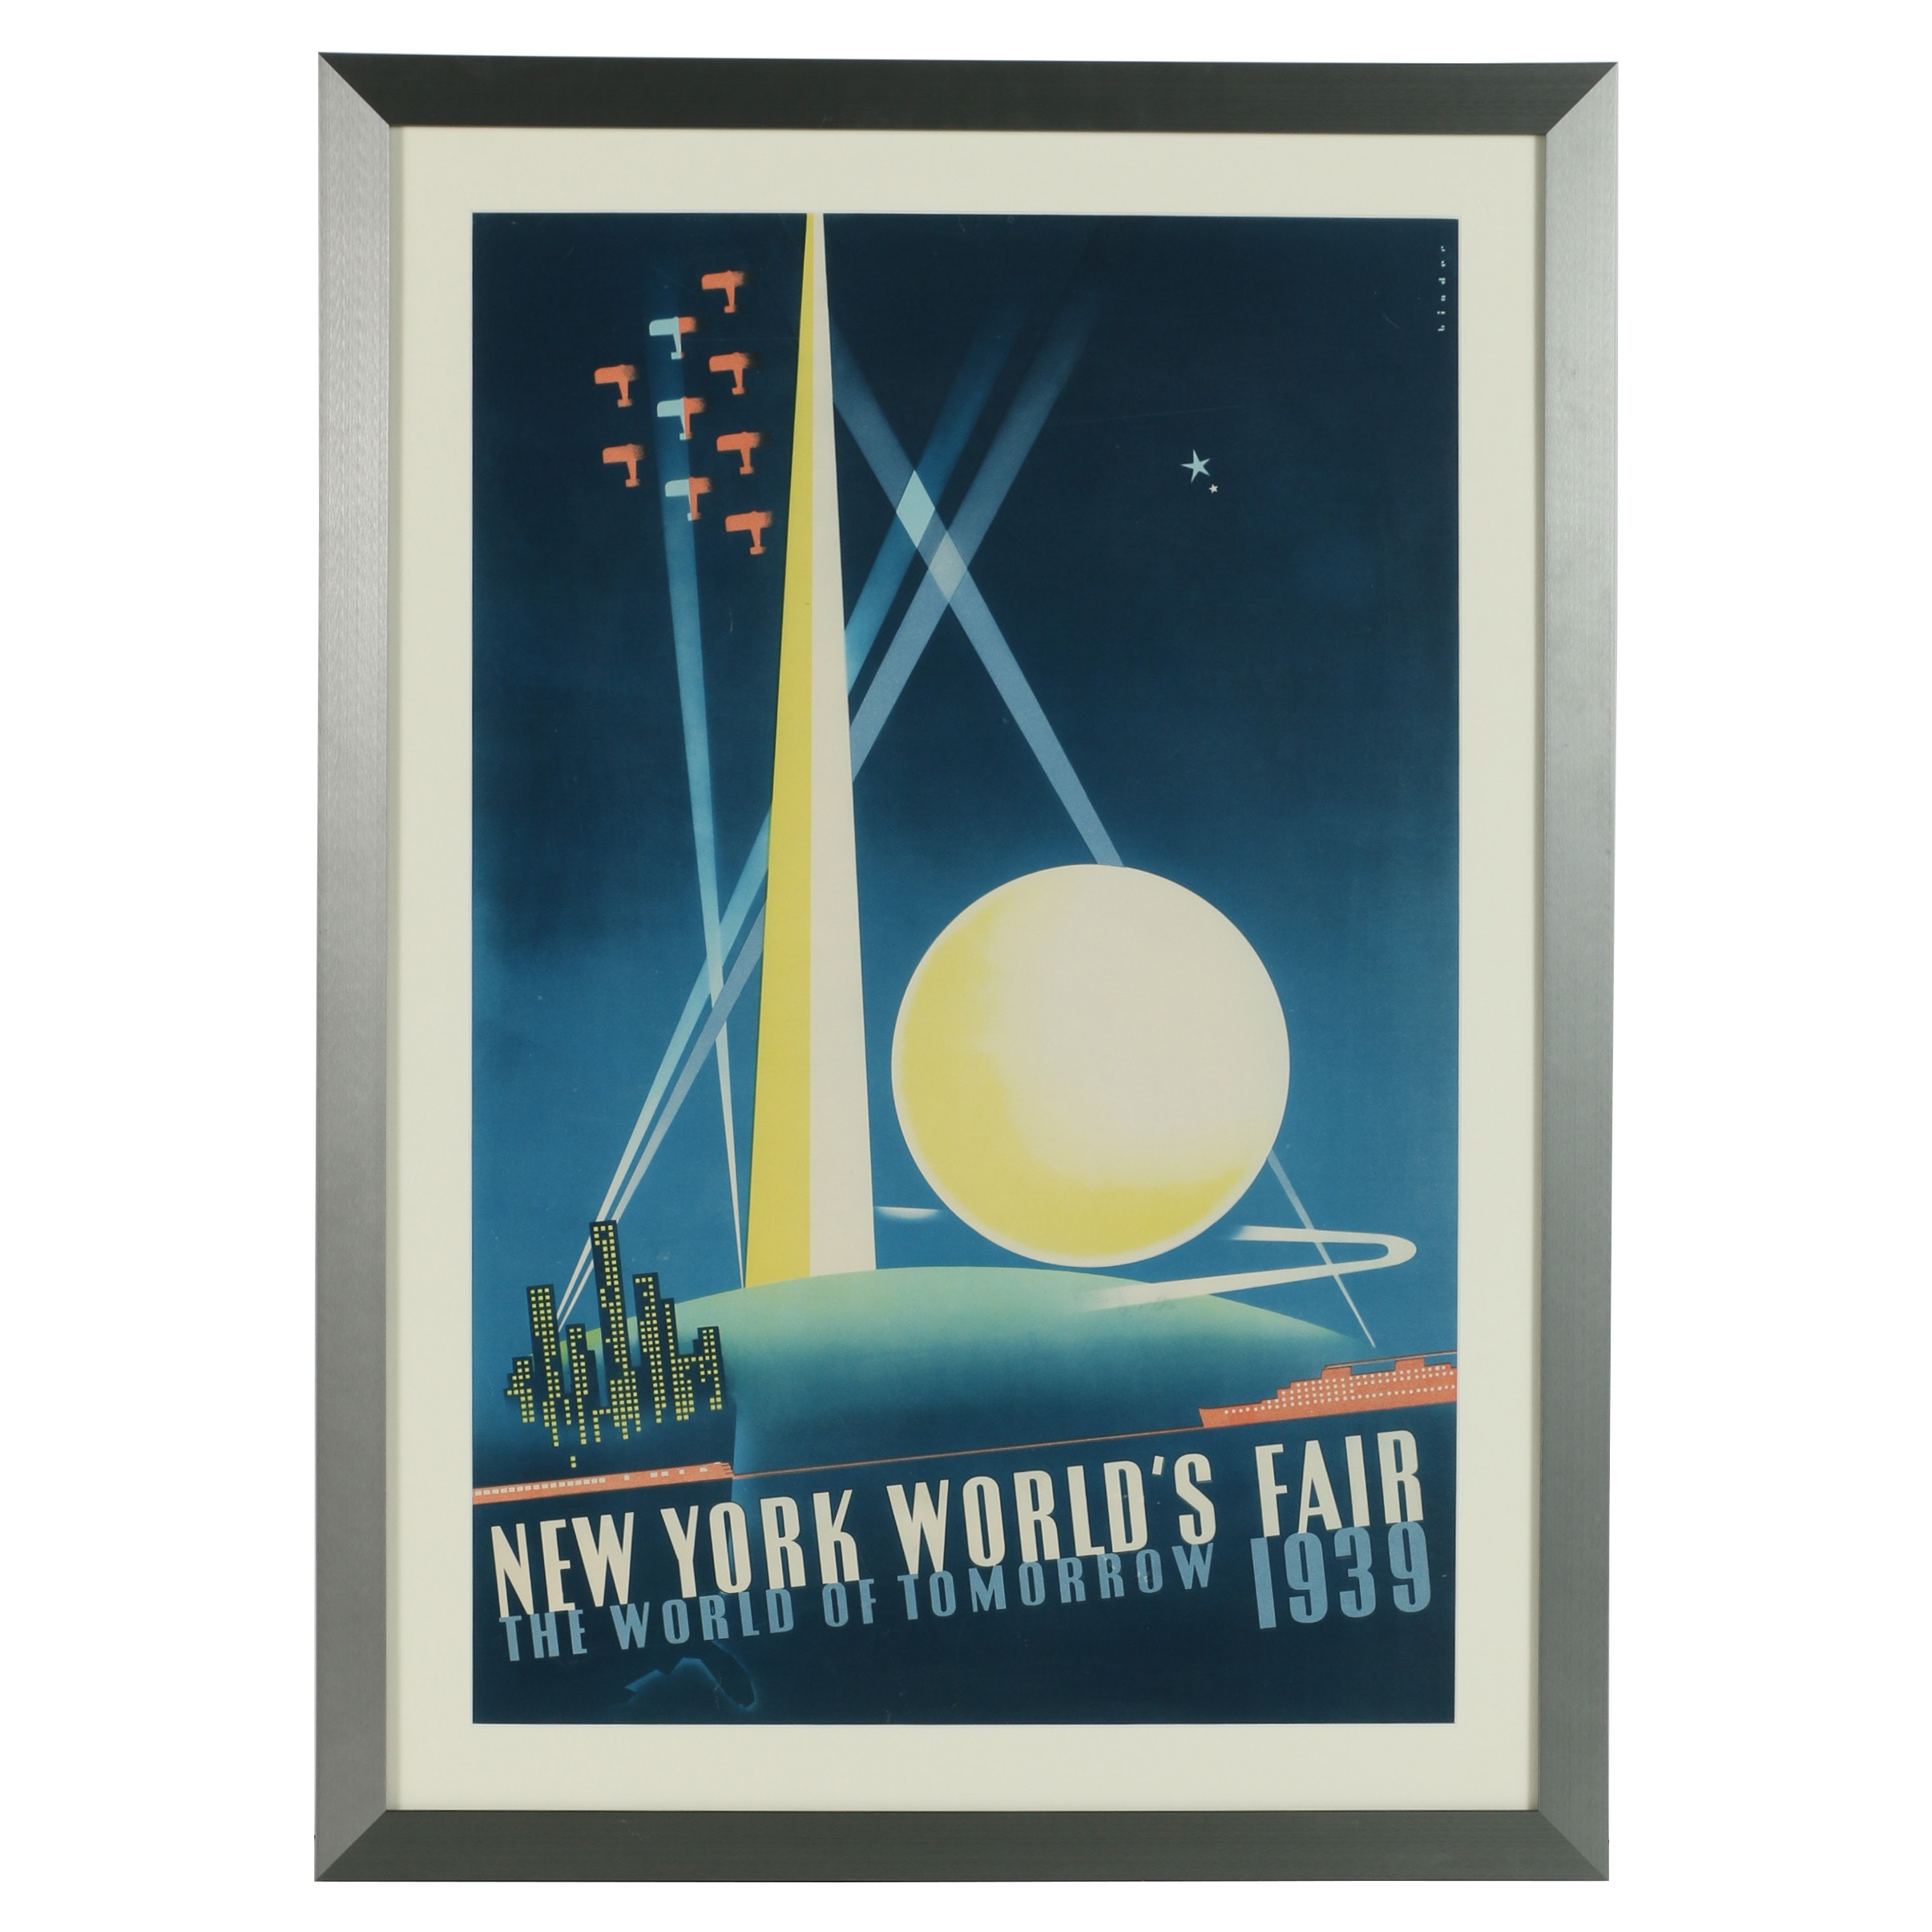 New York World's Fair 1939 Poster after Joseph Binder